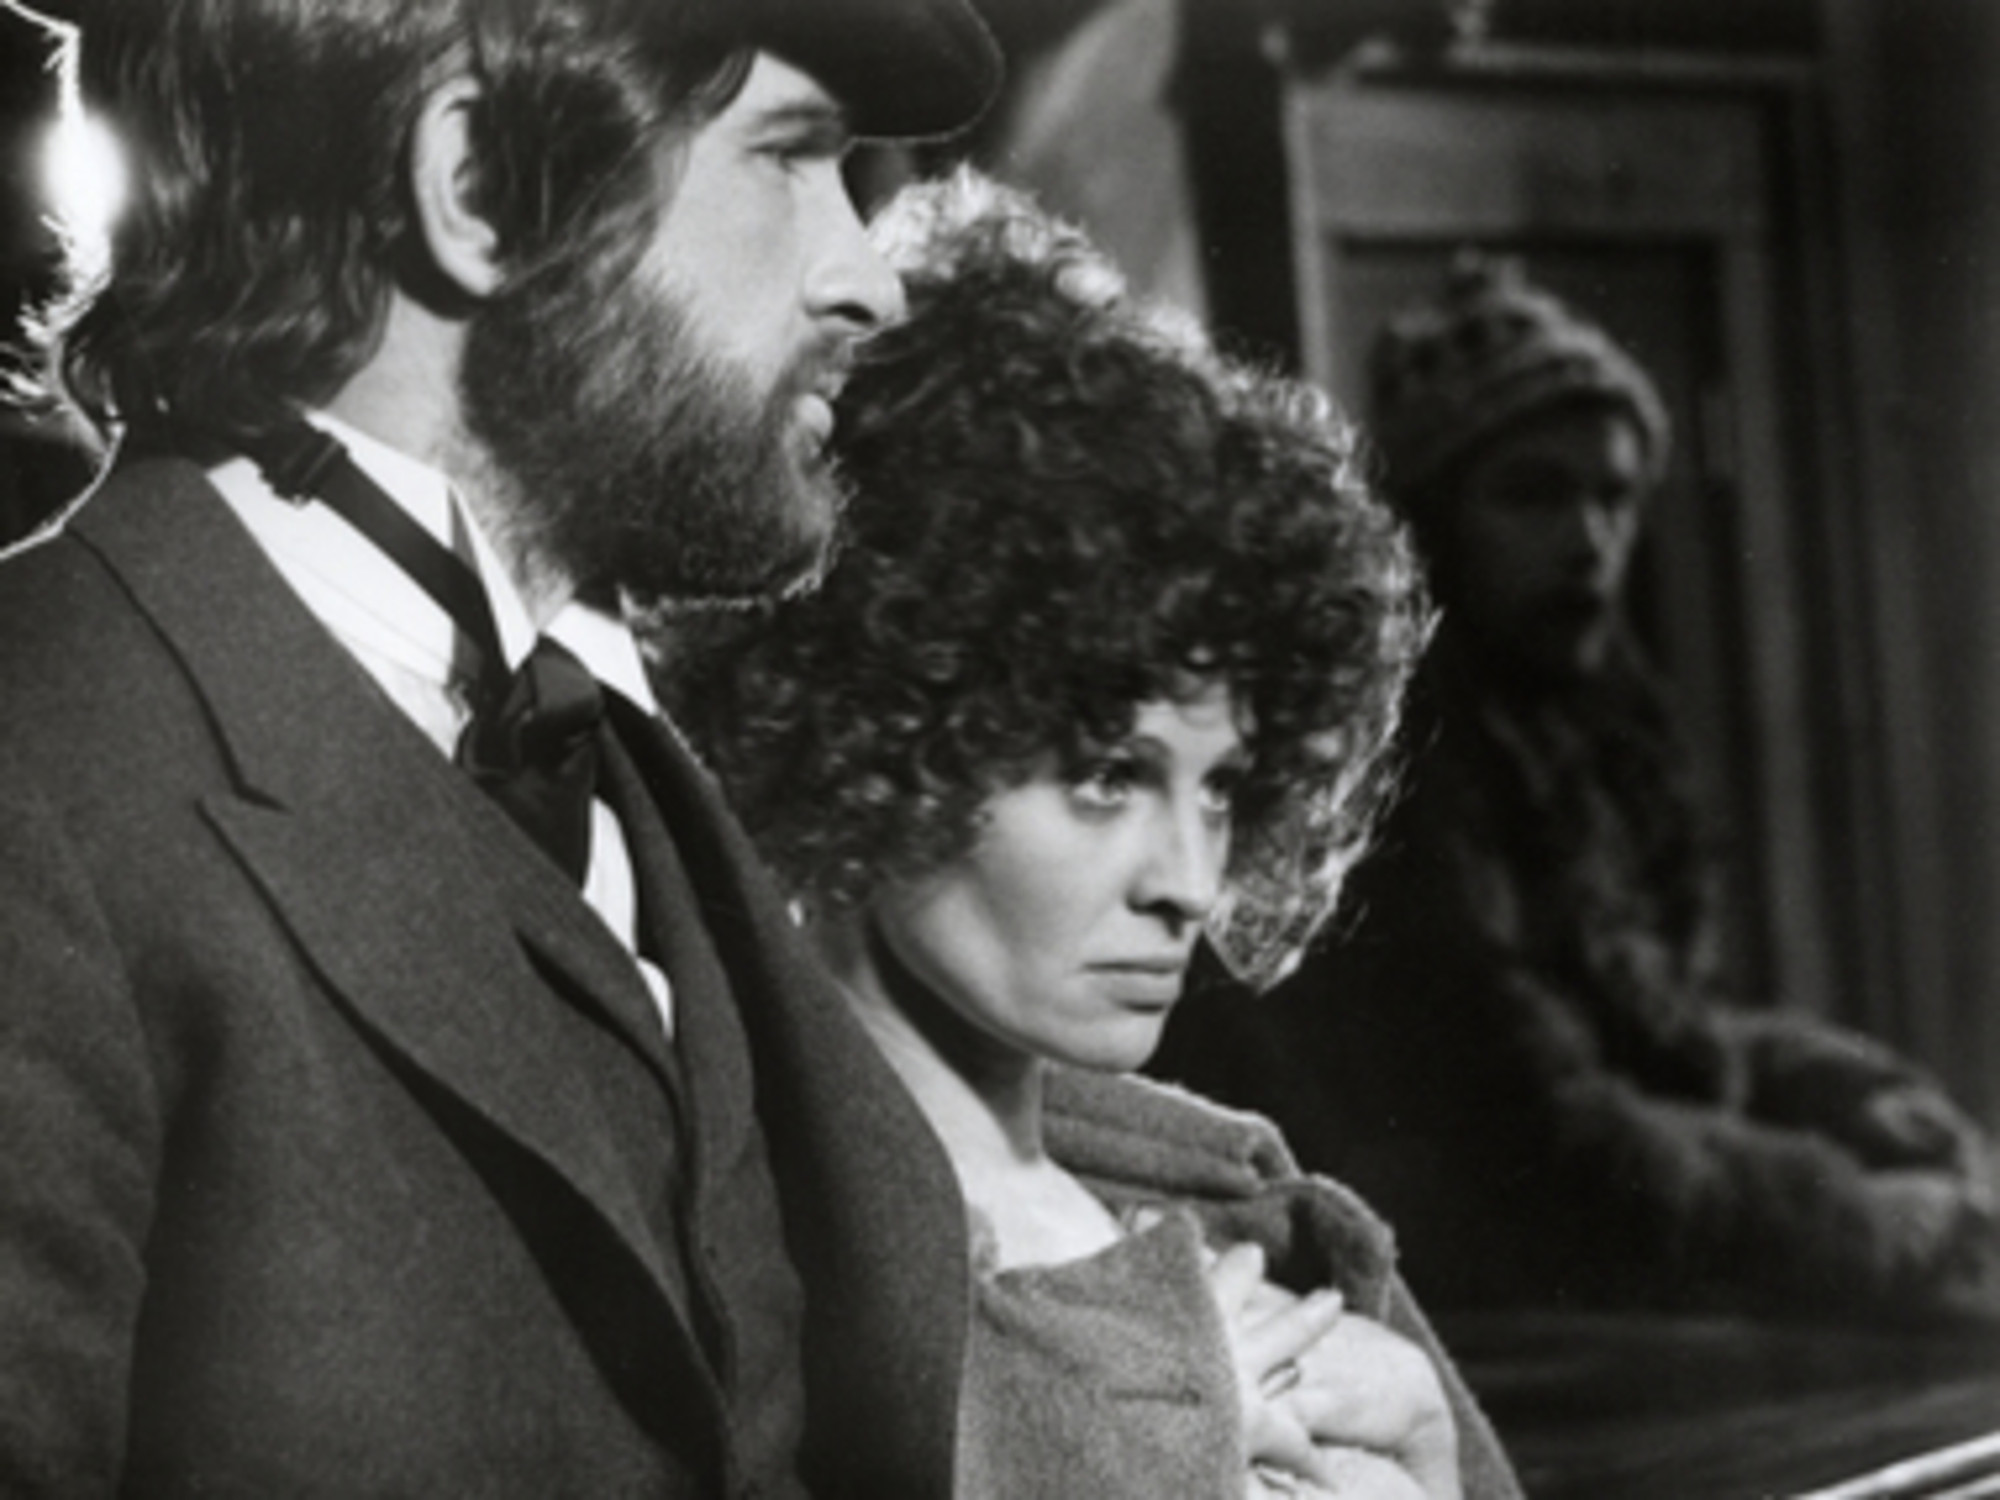 McCabe and Mrs. Miller. 1971. USA. Directed by Robert Altman